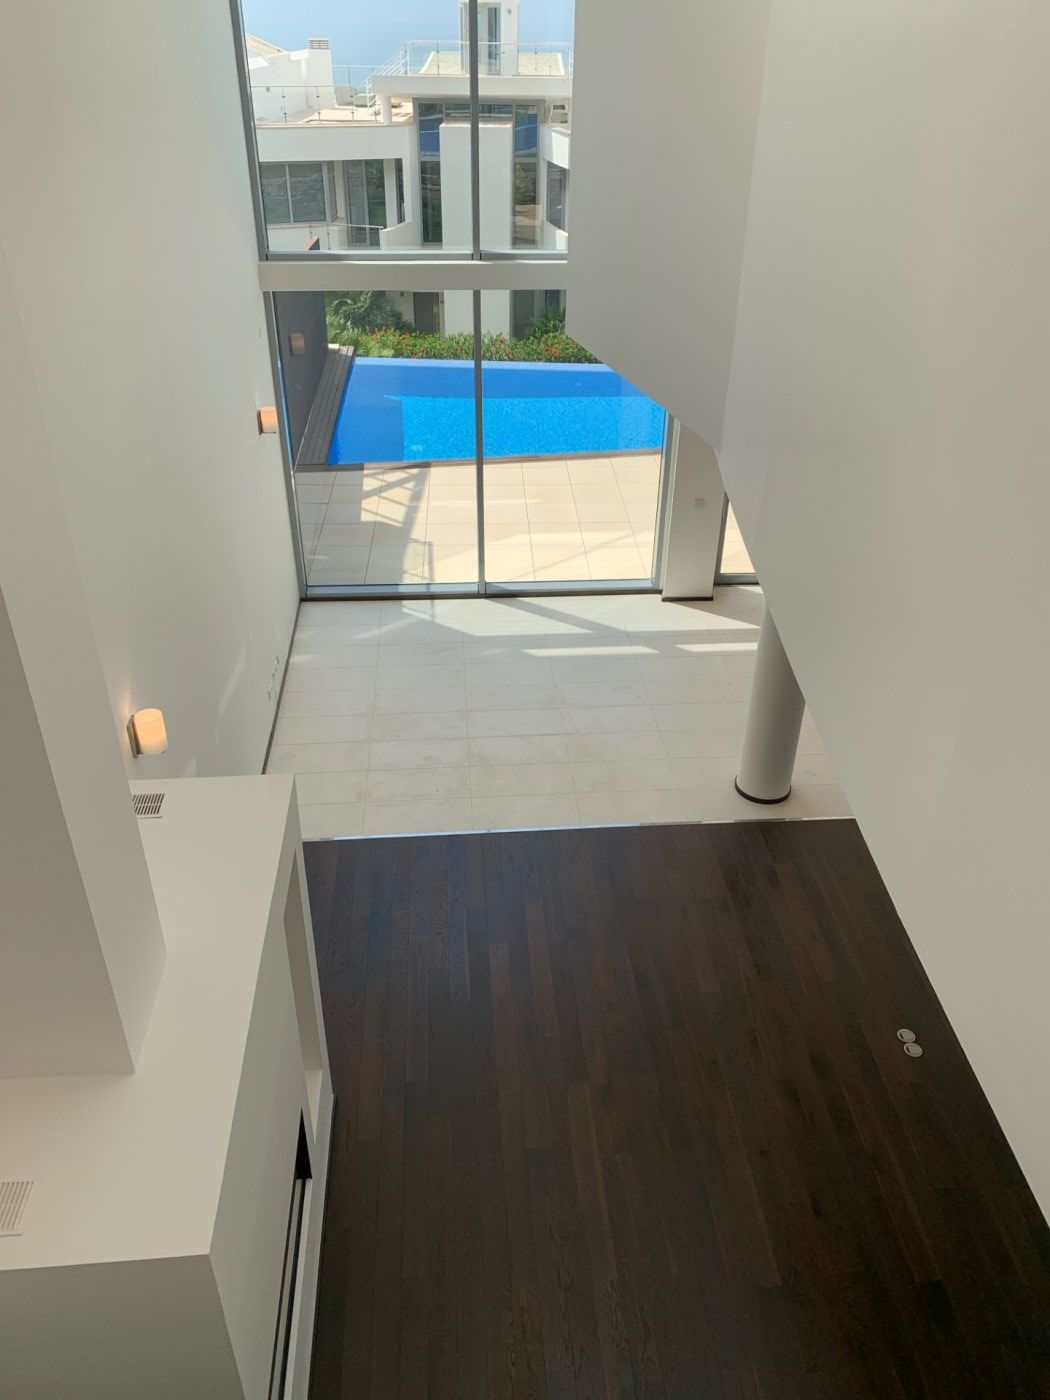 Townhouse with own private swimming pool